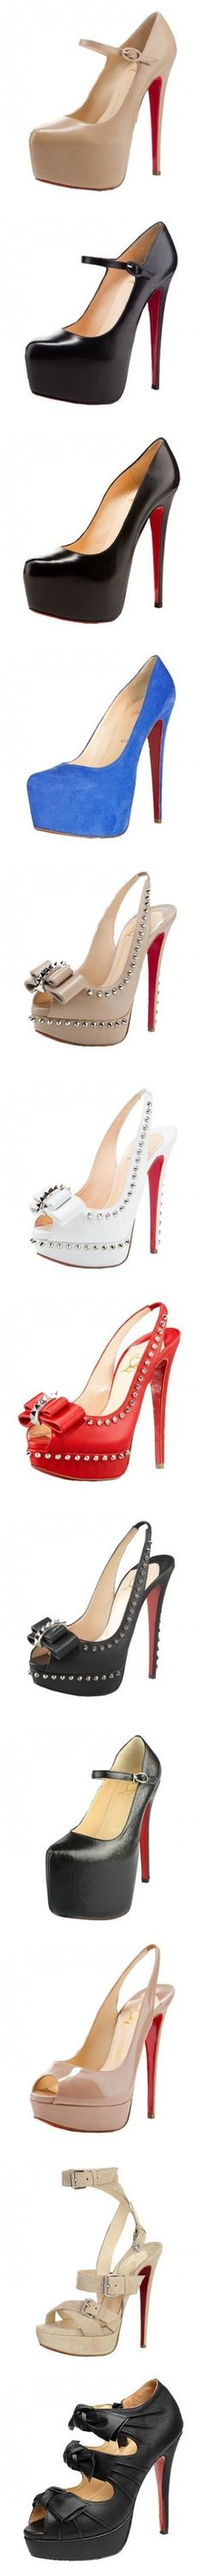 """louis vuitton red bottom shoes as Christmas gift"" by sevenpang ❤ liked on Polyvore"